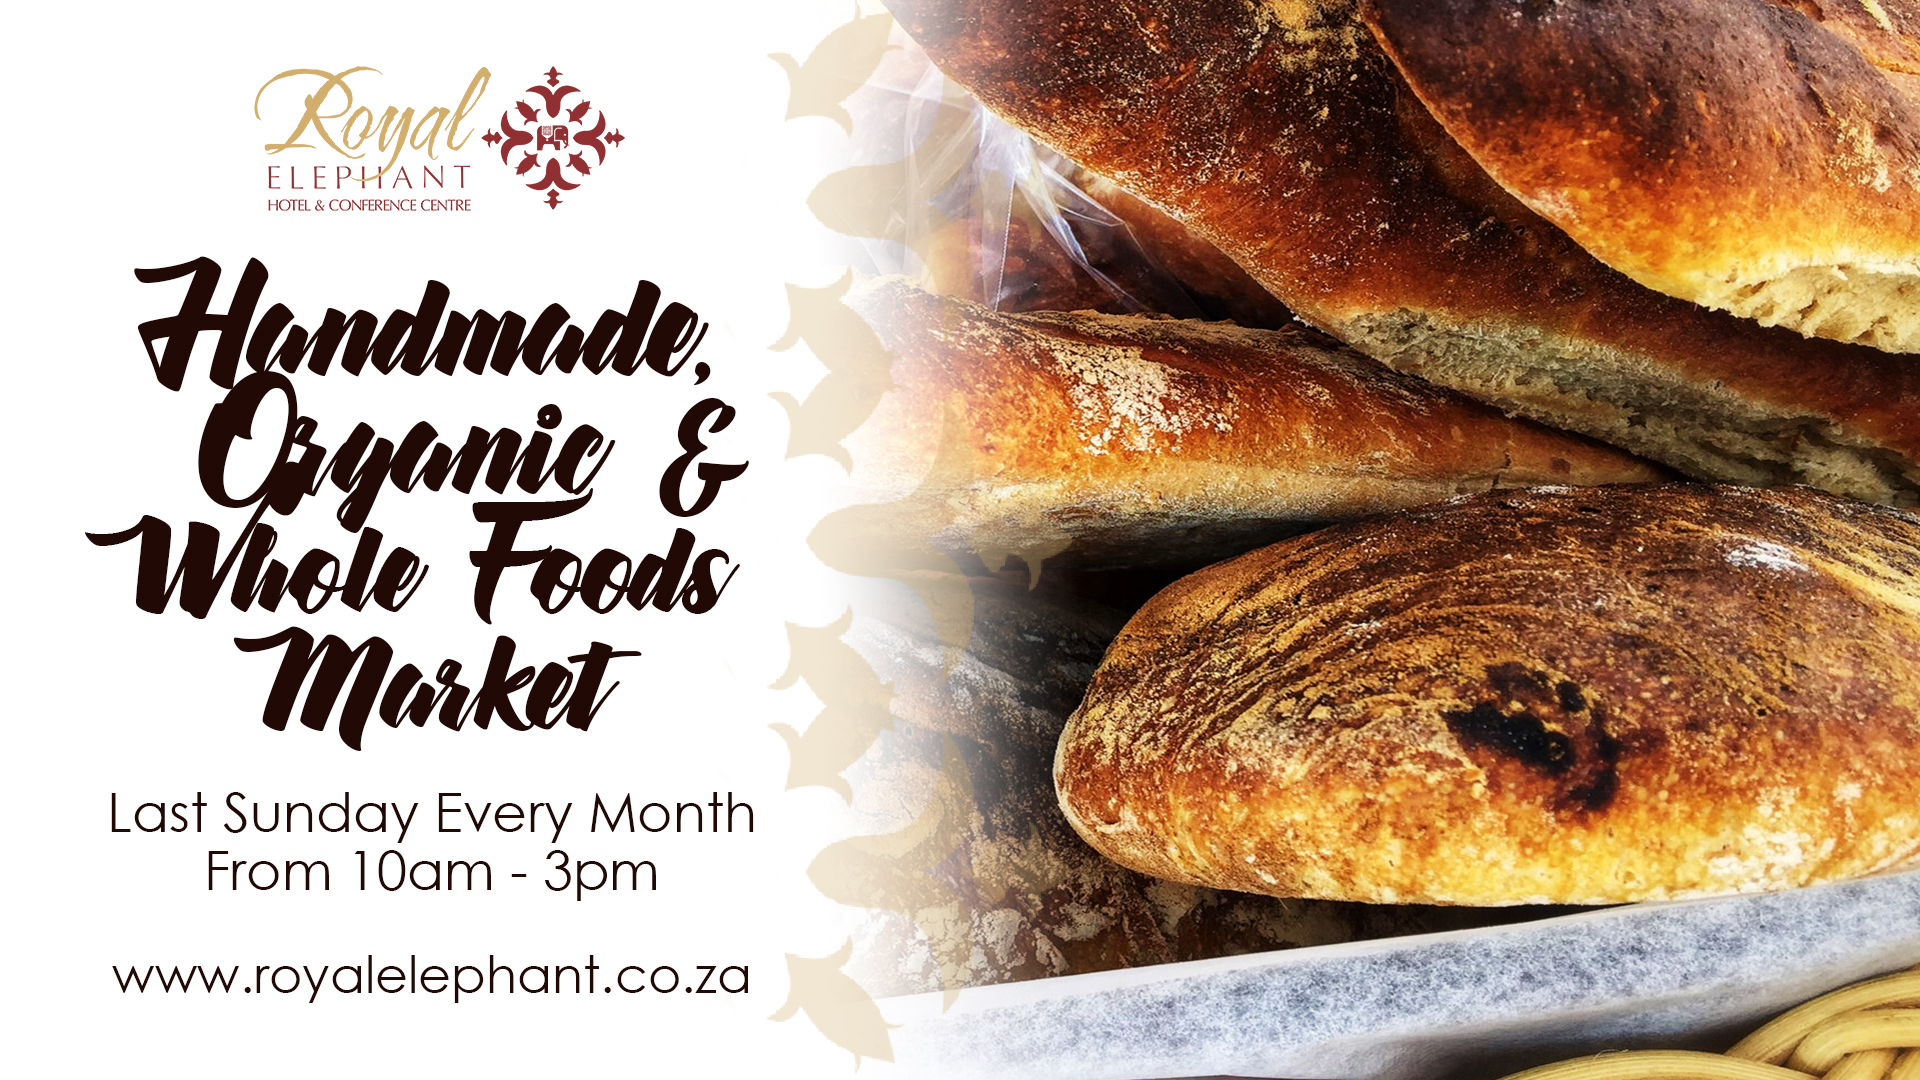 Handmade, Organic & Whole foods Market – 27 October 2019